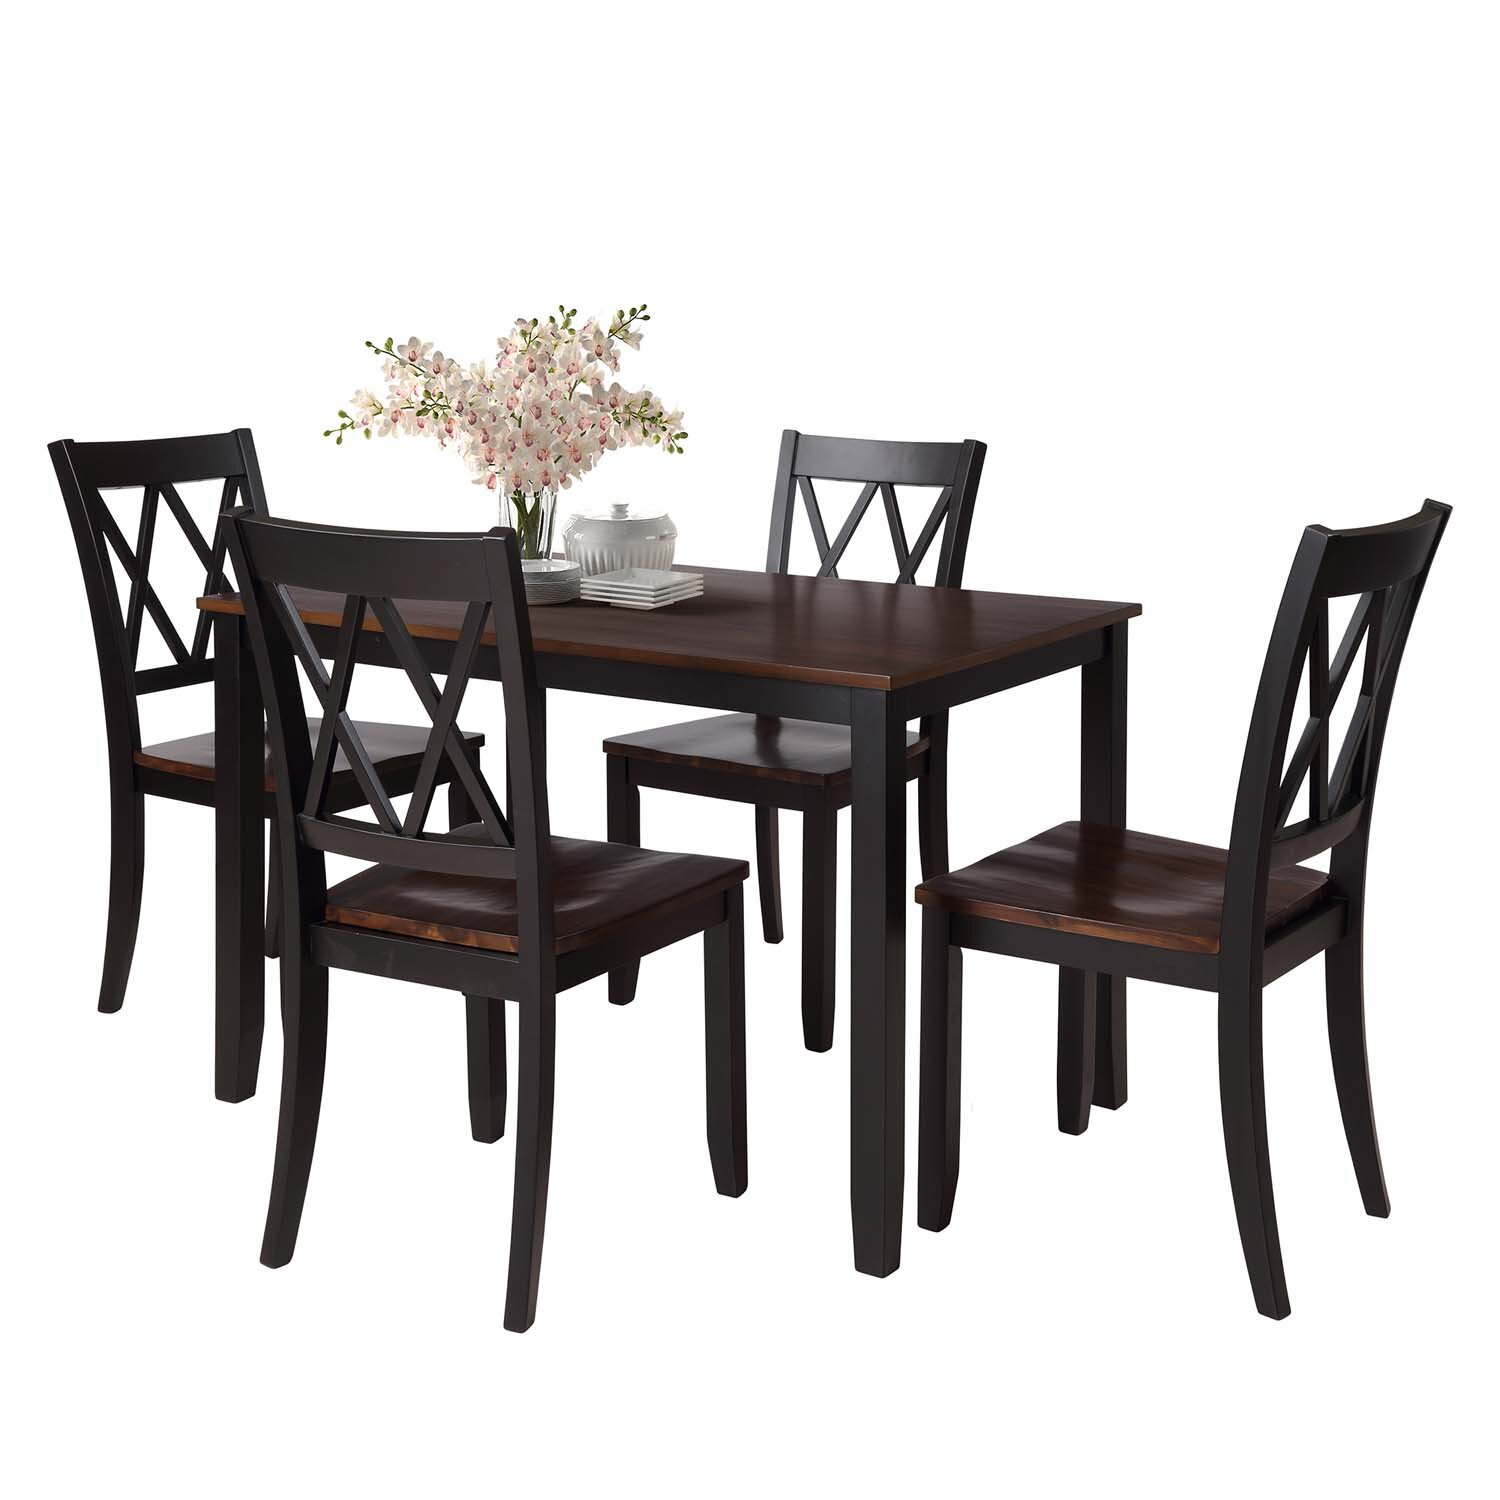 Red Barrel Studio 5-Piece Dining Table Set Home Kitchen Table And